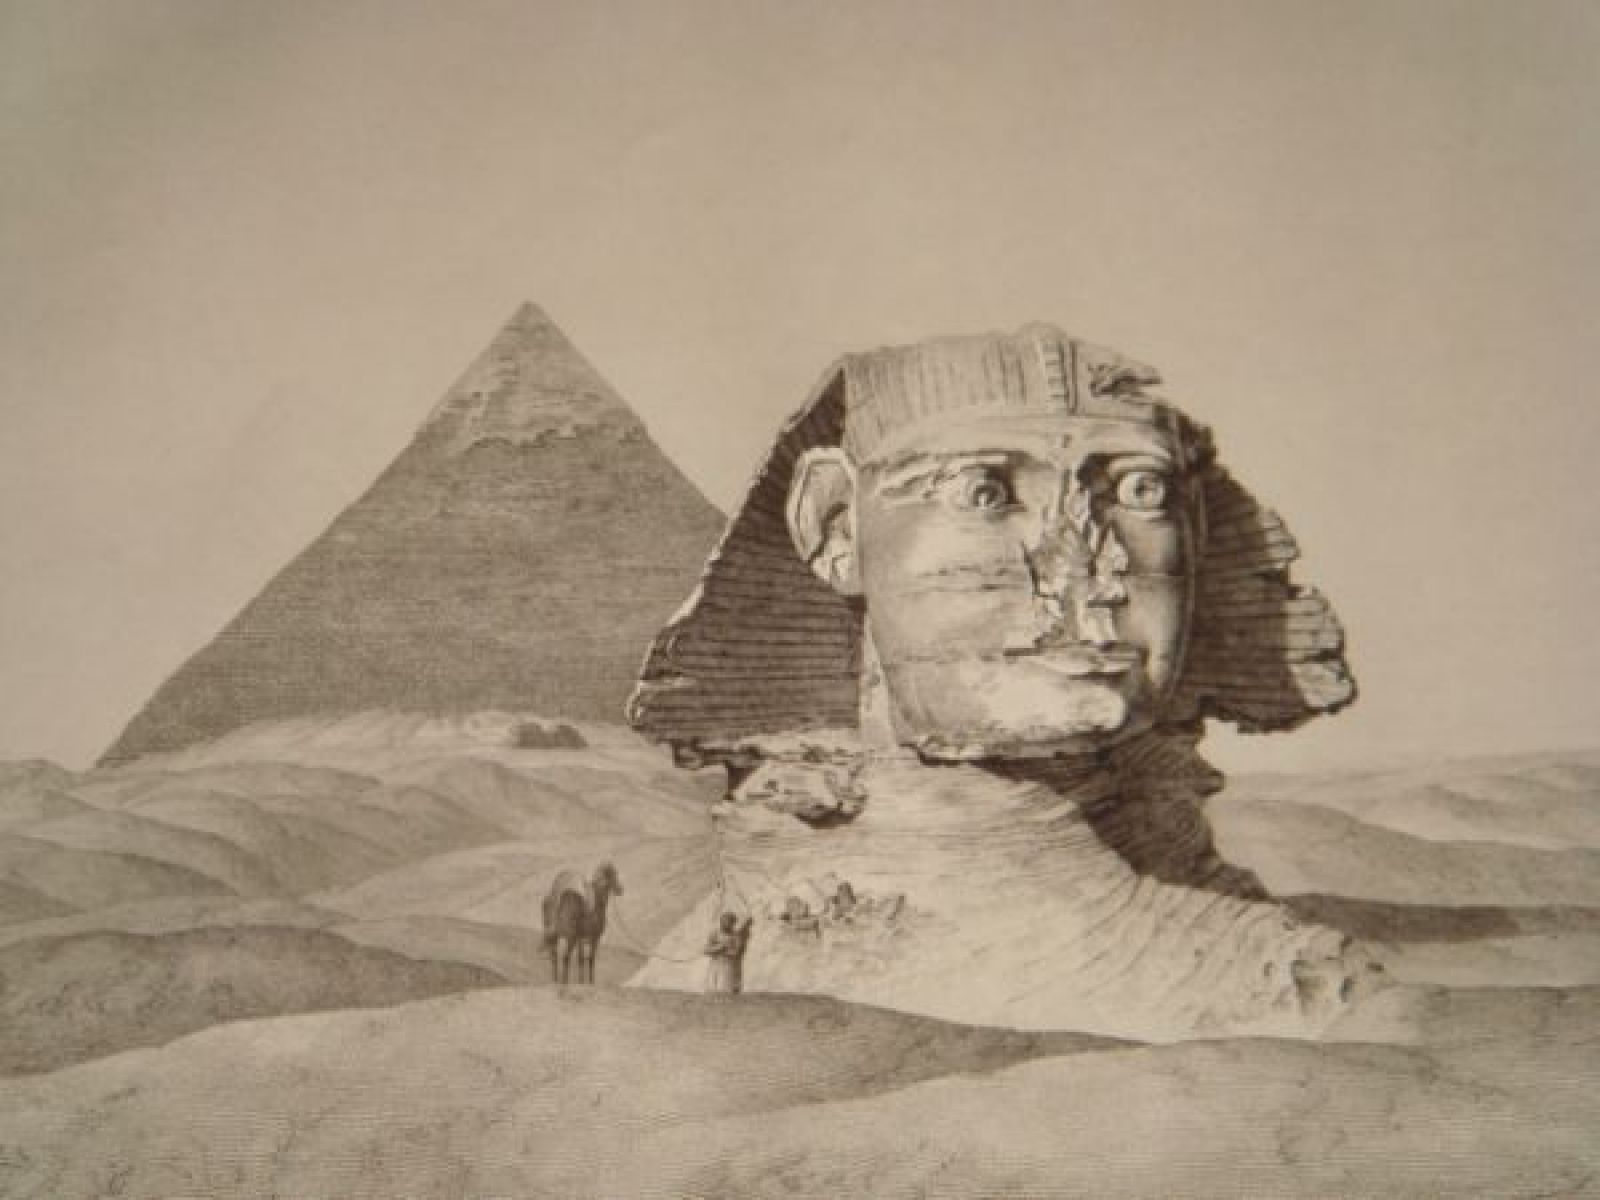 Sphinx with pyramids in the background, a single man leading a camel in the foreground